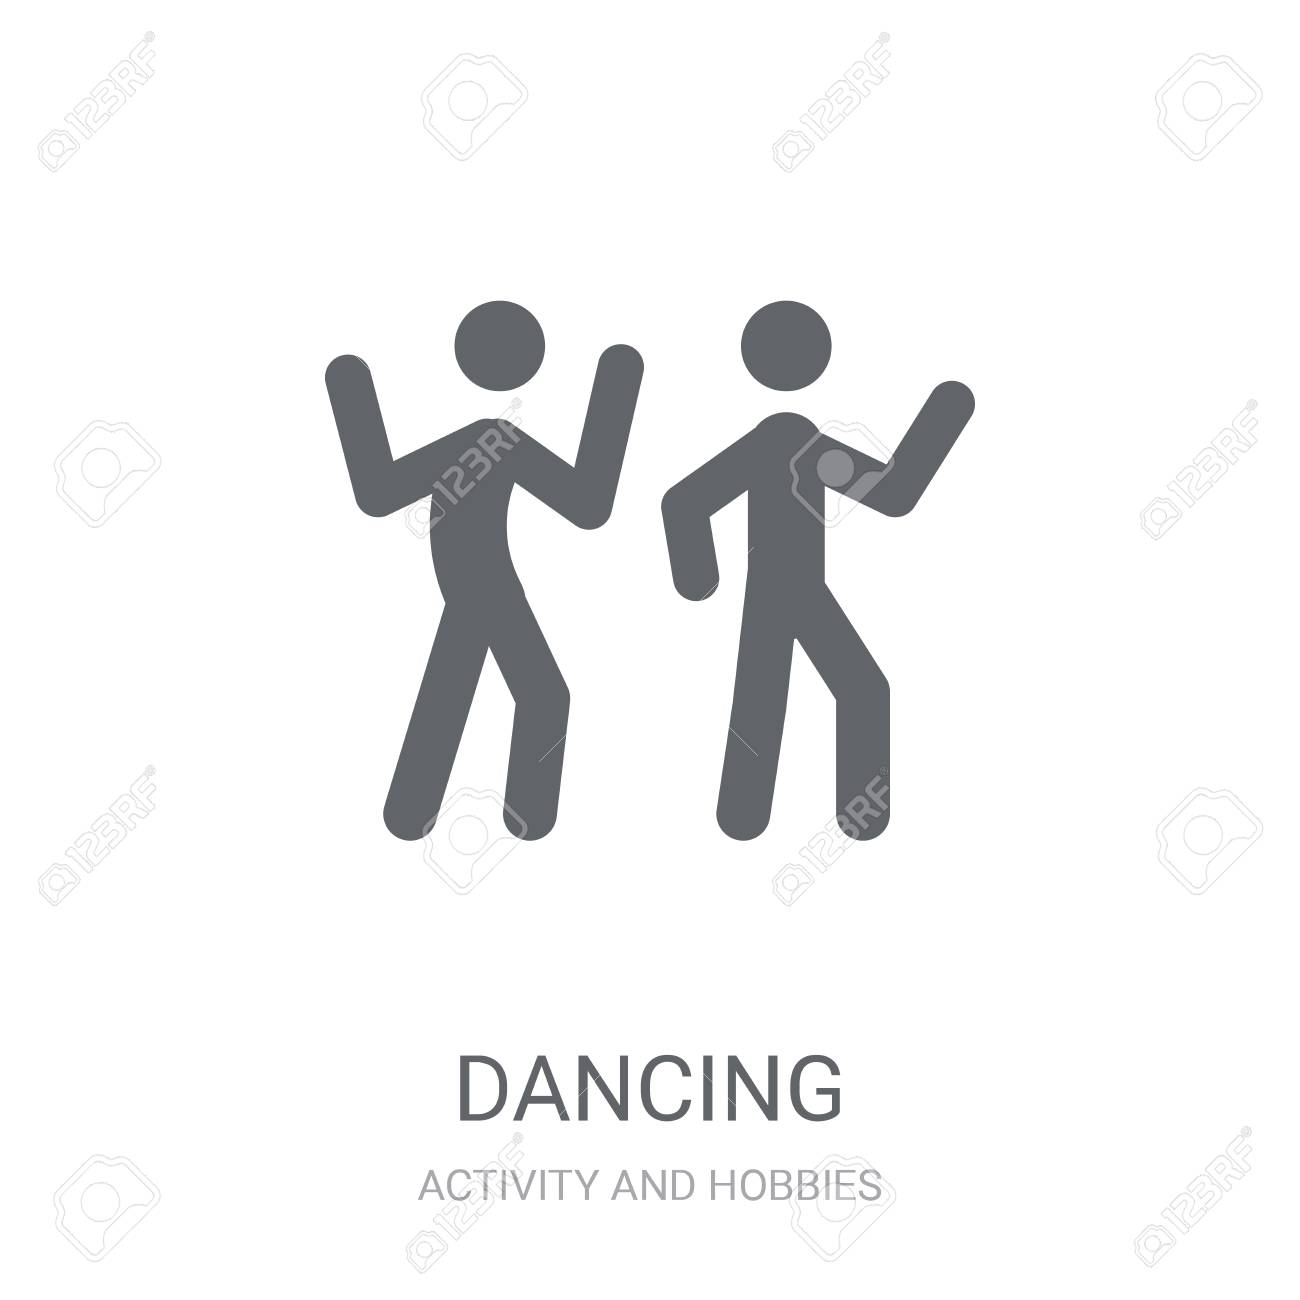 Dancing icon  Trendy Dancing logo concept on white background